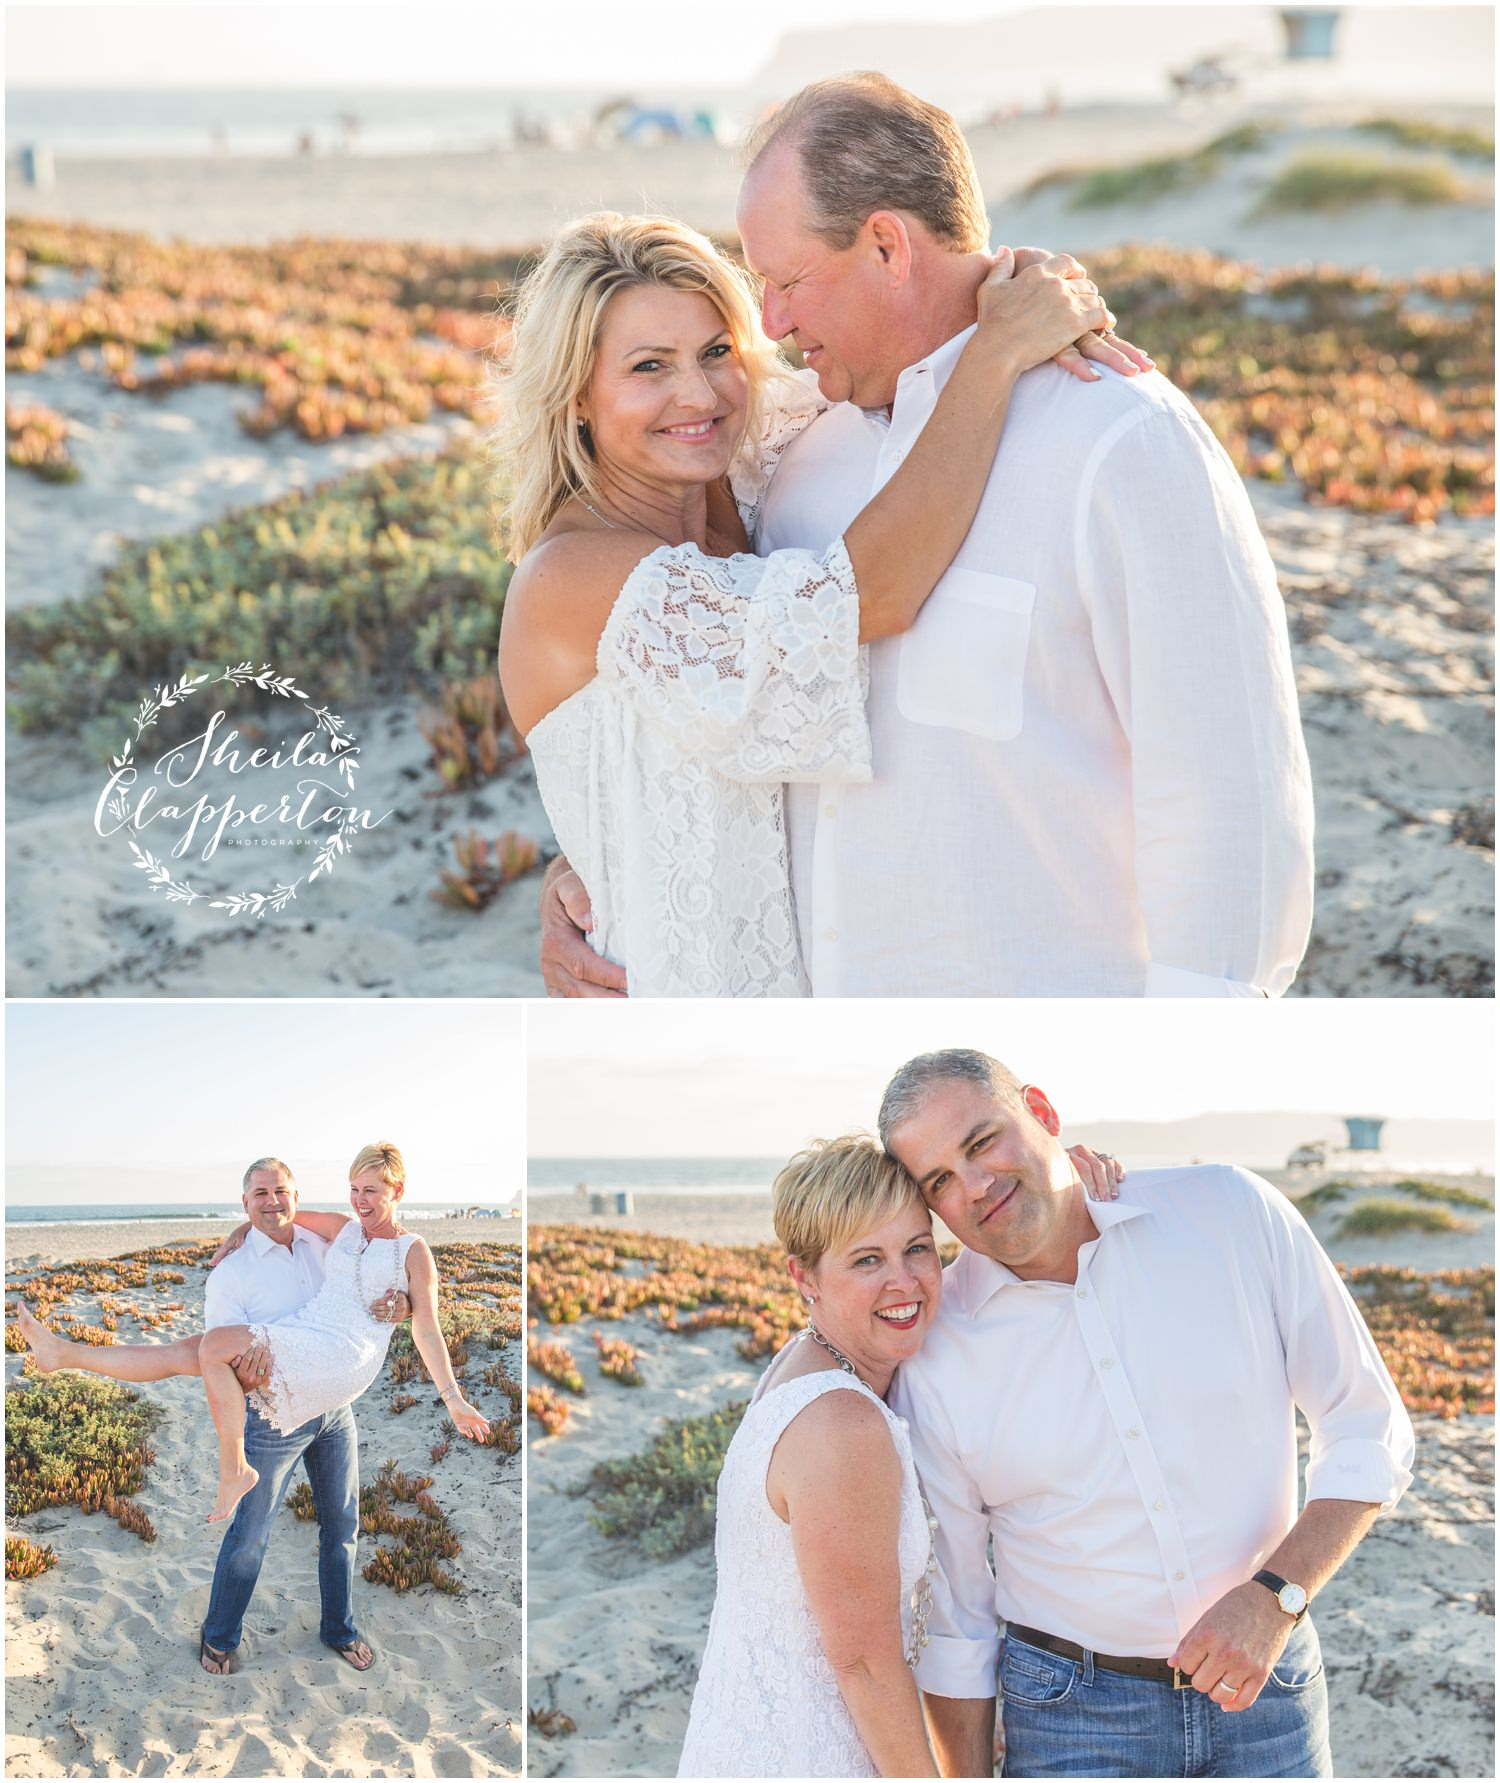 coronado vow renewal photographer